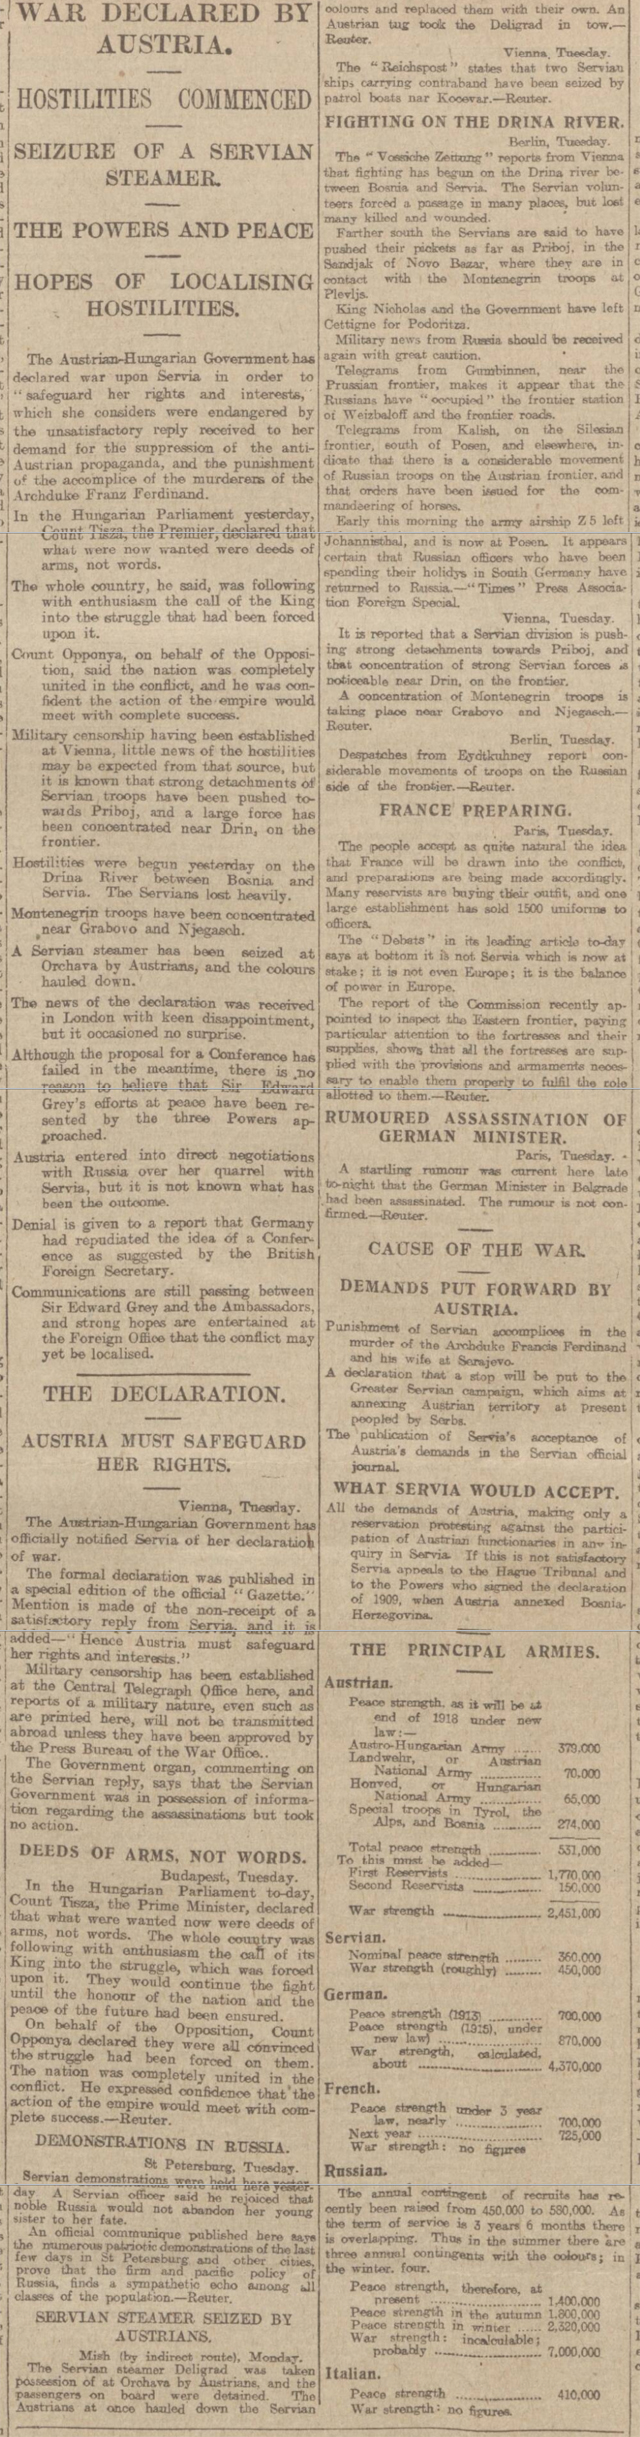 historical newspaper report about Austria-Hungary Declares War on Serbia - 28 July 1914